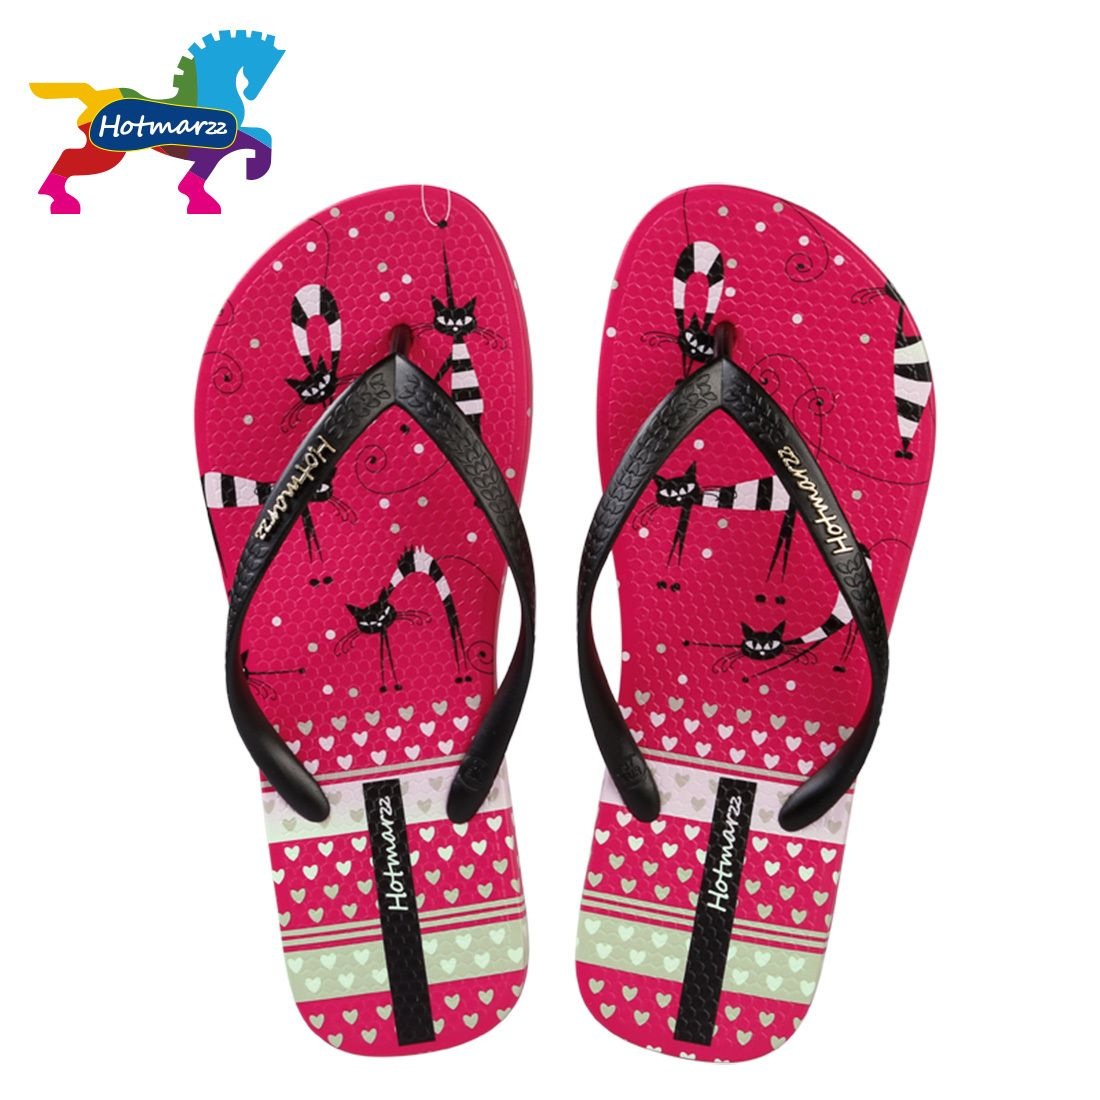 8fb6ddfc04c2 Couple Flip Flops Pink Decor Print Chic Sandals Slipper Rubber Non-Slip  House Thong Slippers